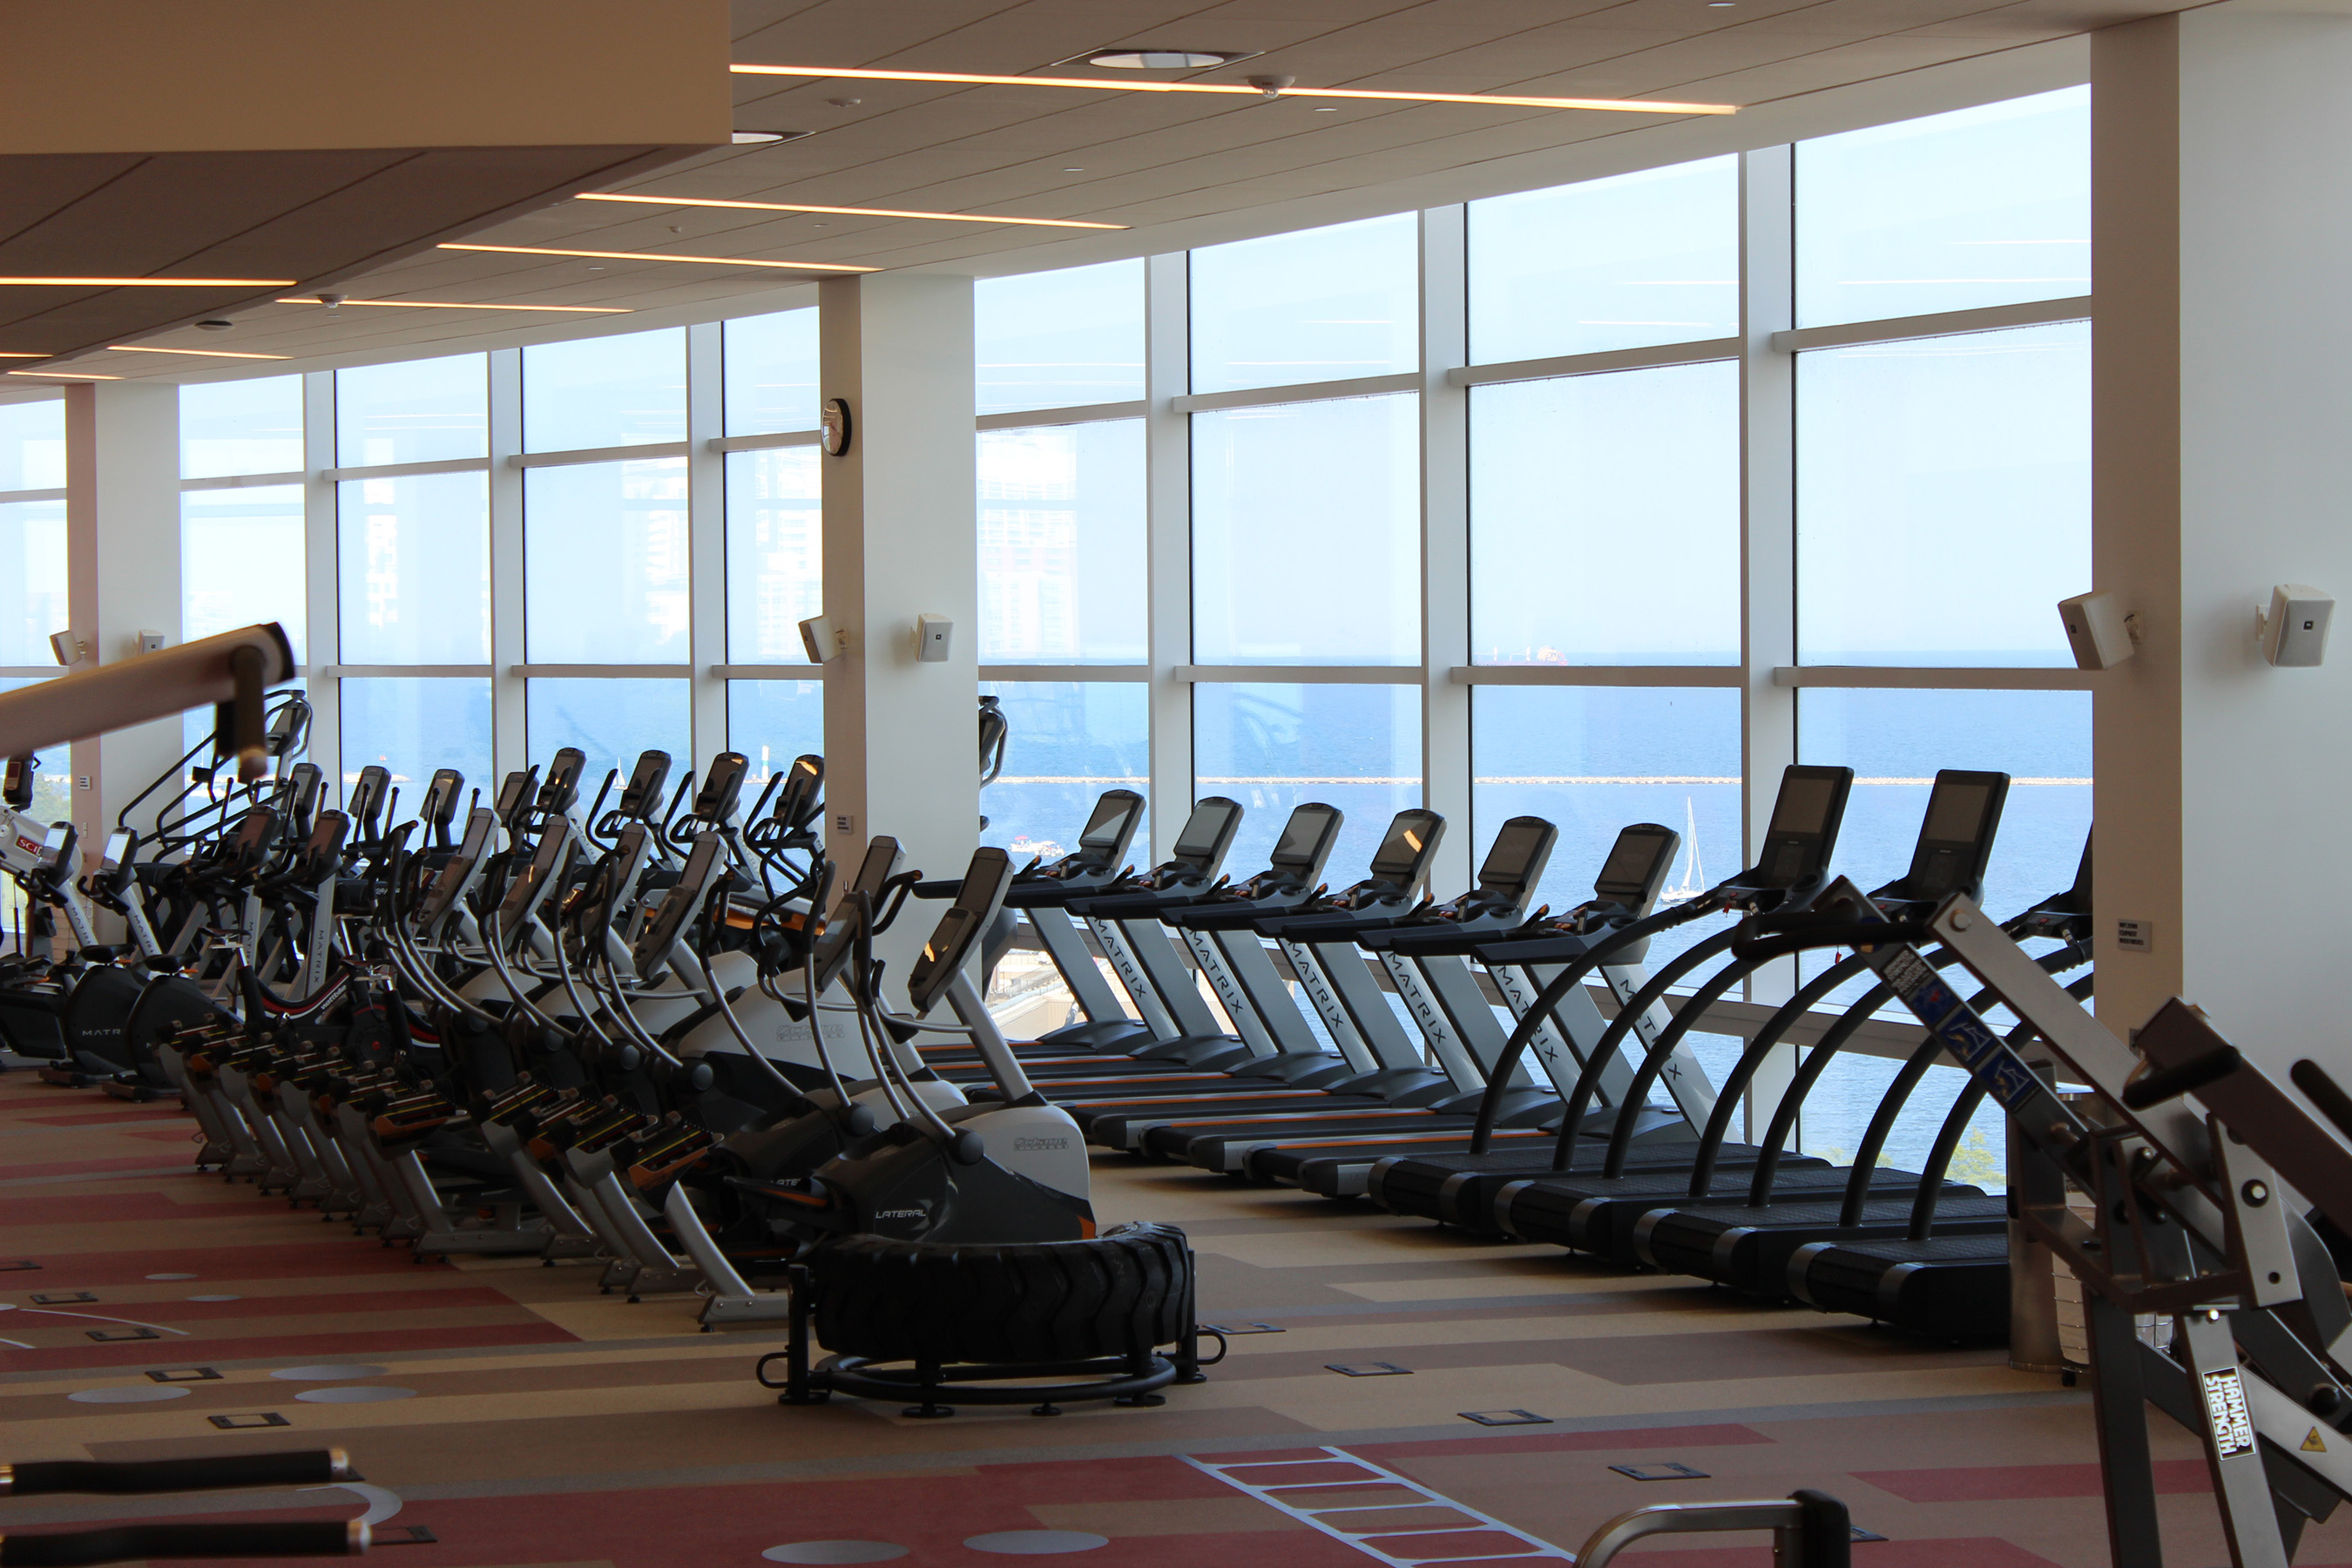 The Fitness Center is available to all employees and includes more than 40 pieces of new cardio equipment, strength training equipment, weights, two group fitness rooms, a spin studio and locker rooms.